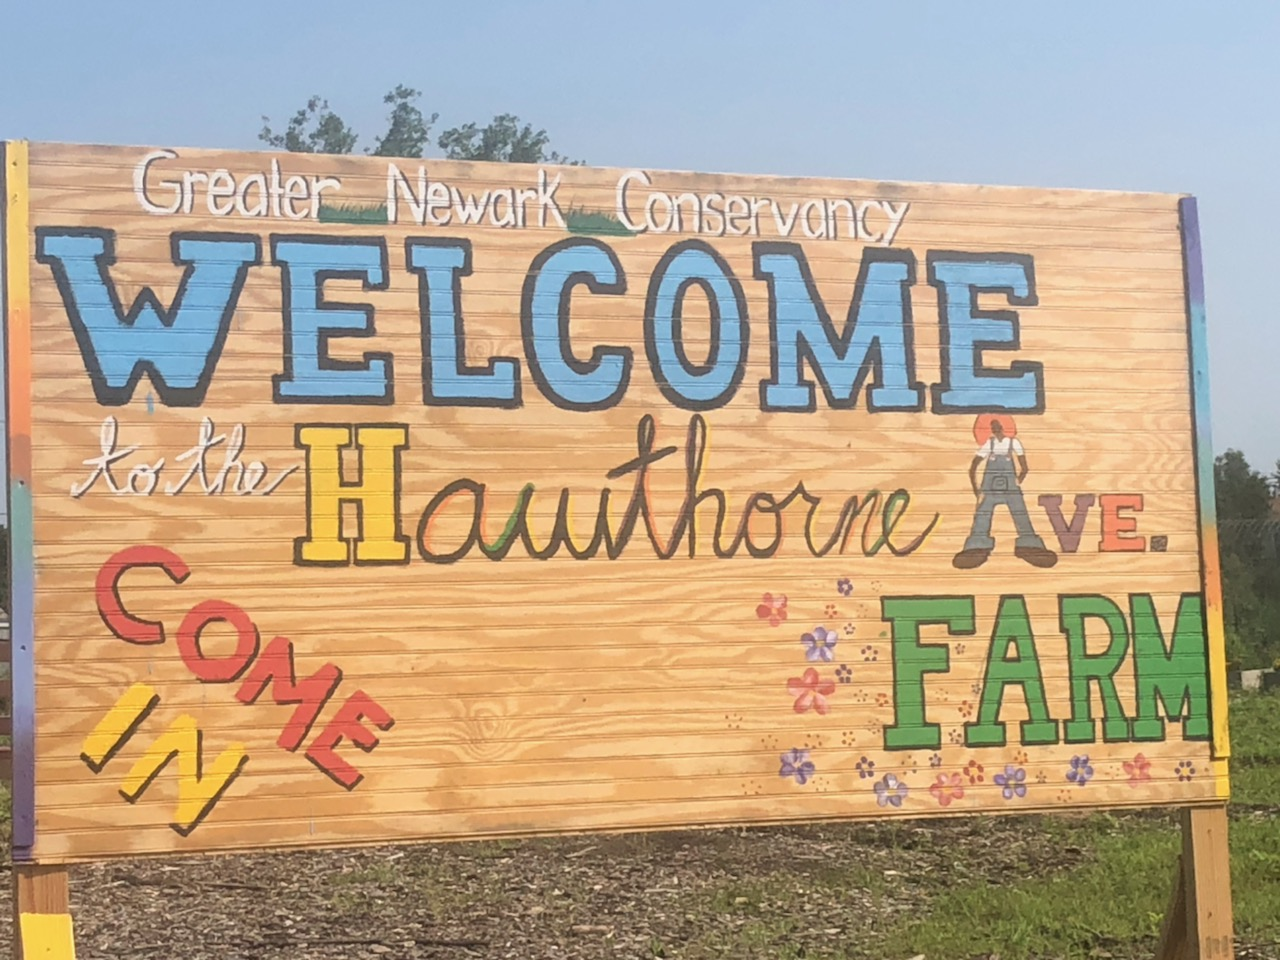 Hawthorne Avenue Farm